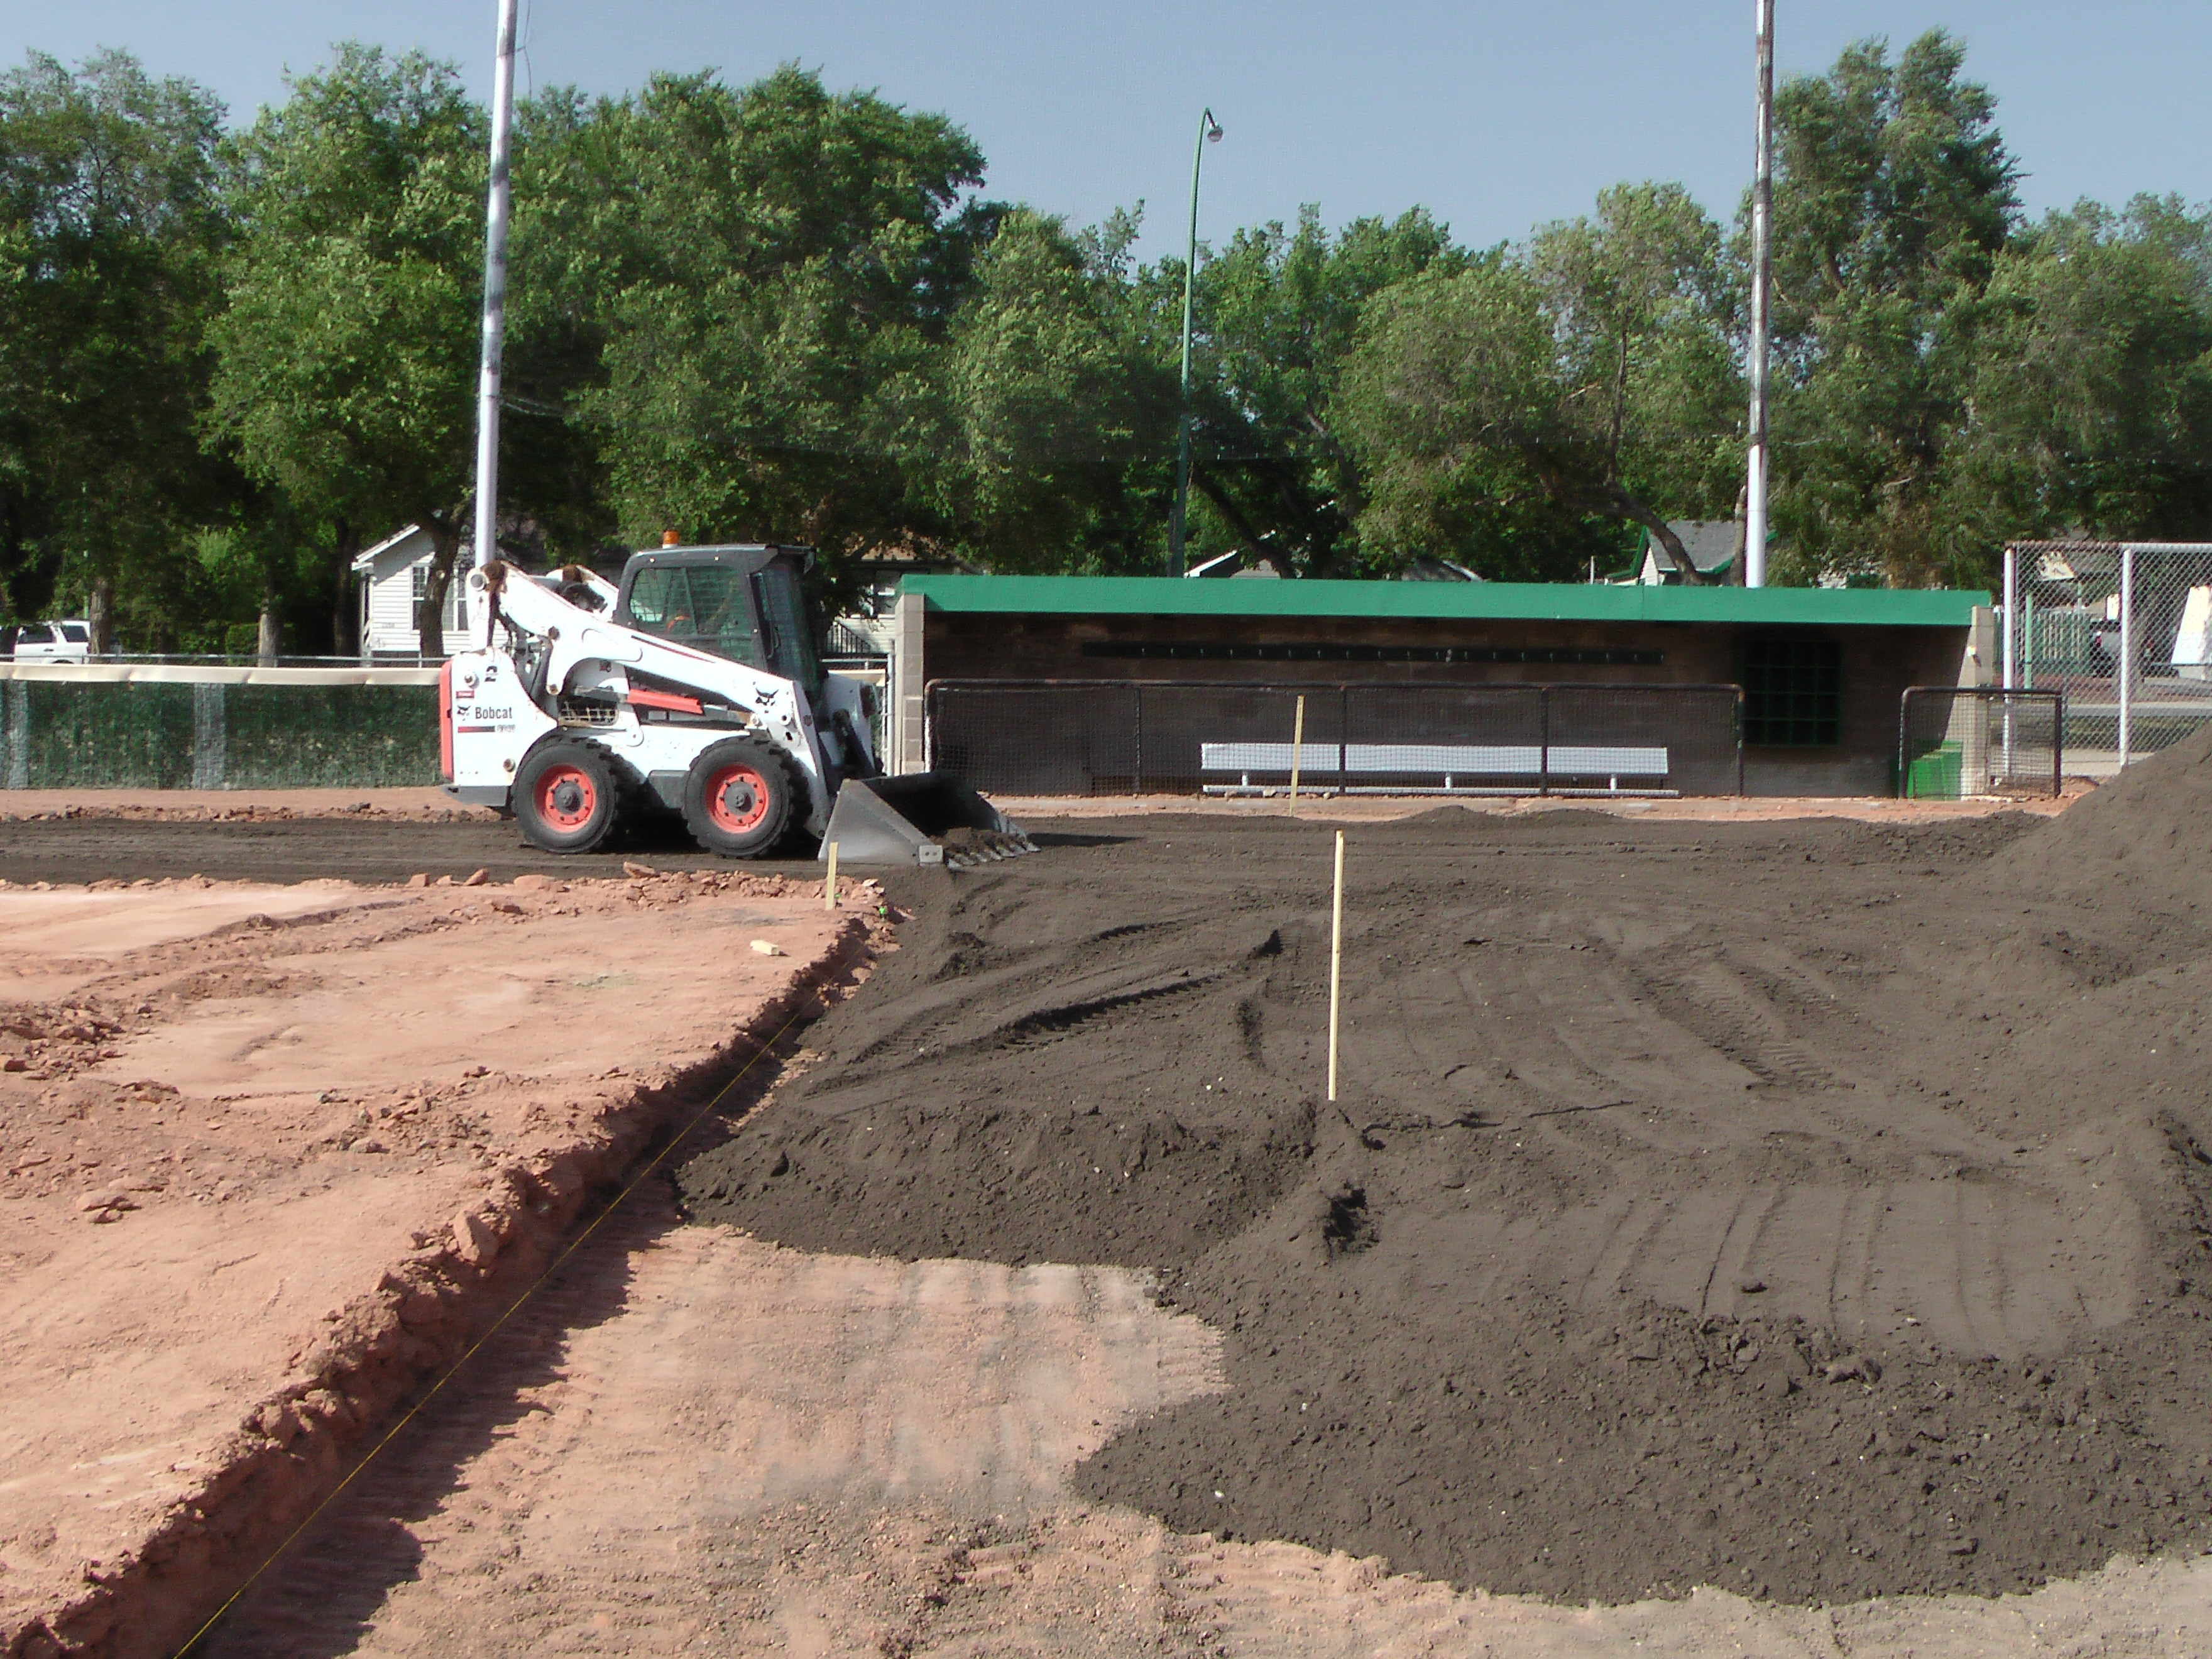 Aug 22 Optimist Park Field Renovations: New Top Soil Going In, after 45 dump trucks of dirt and grass removed! Pics and Video...check back for more!  - Image 12